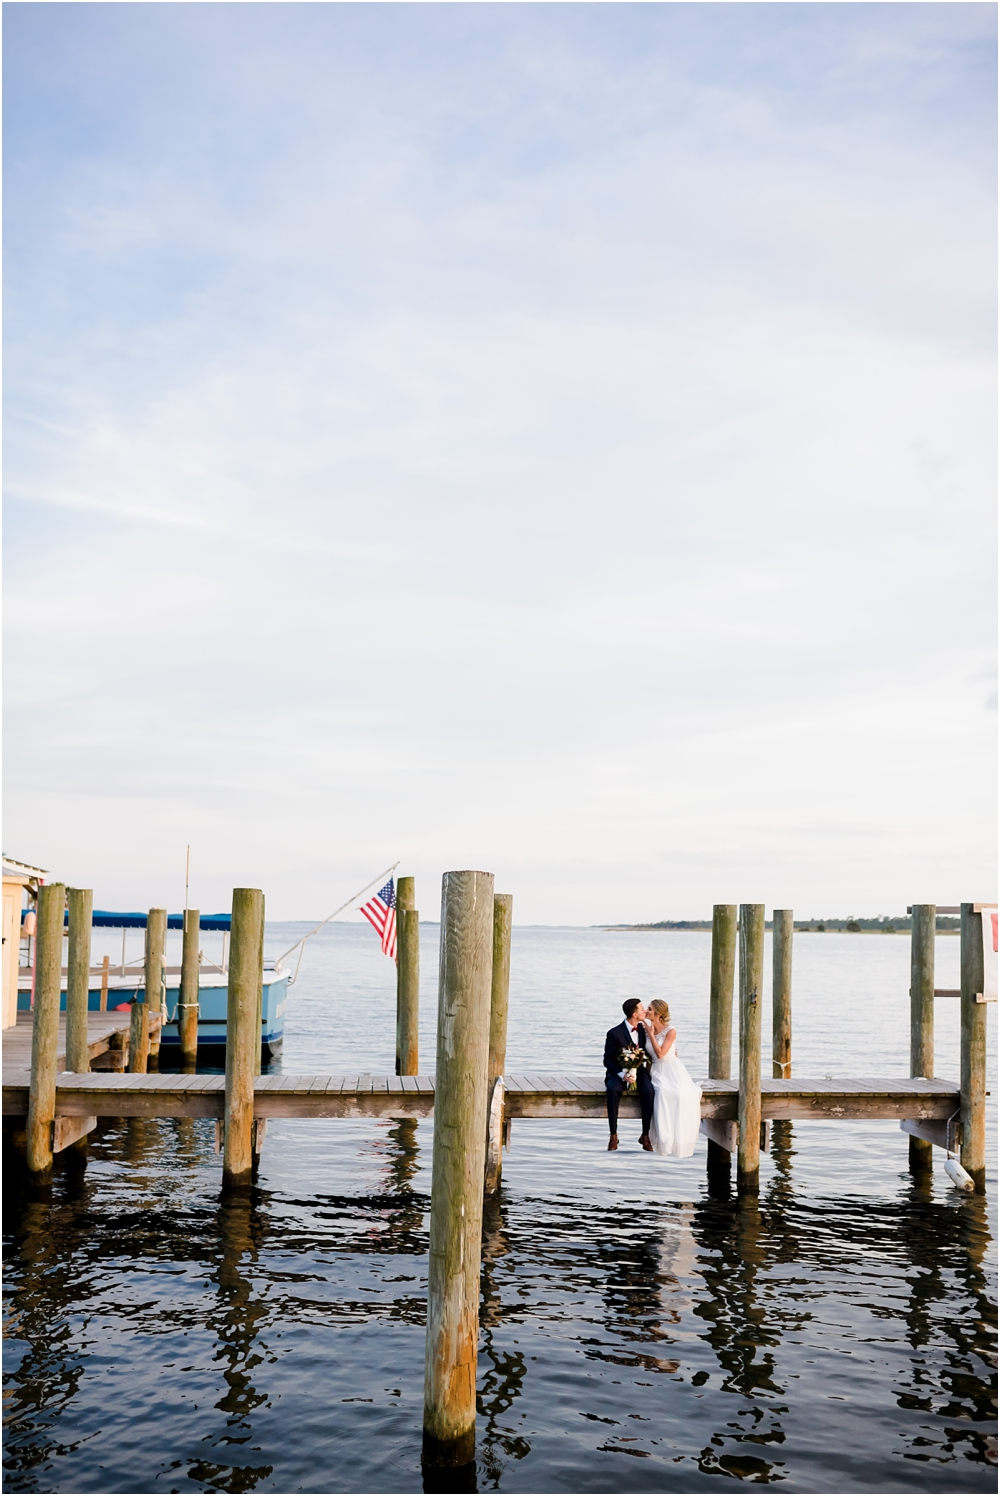 florida-wedding-photographer-30a-panama-city-beach-dothan-tallahassee-kiersten-grant-photography-weddings-family-engagement-photos-122.jpg